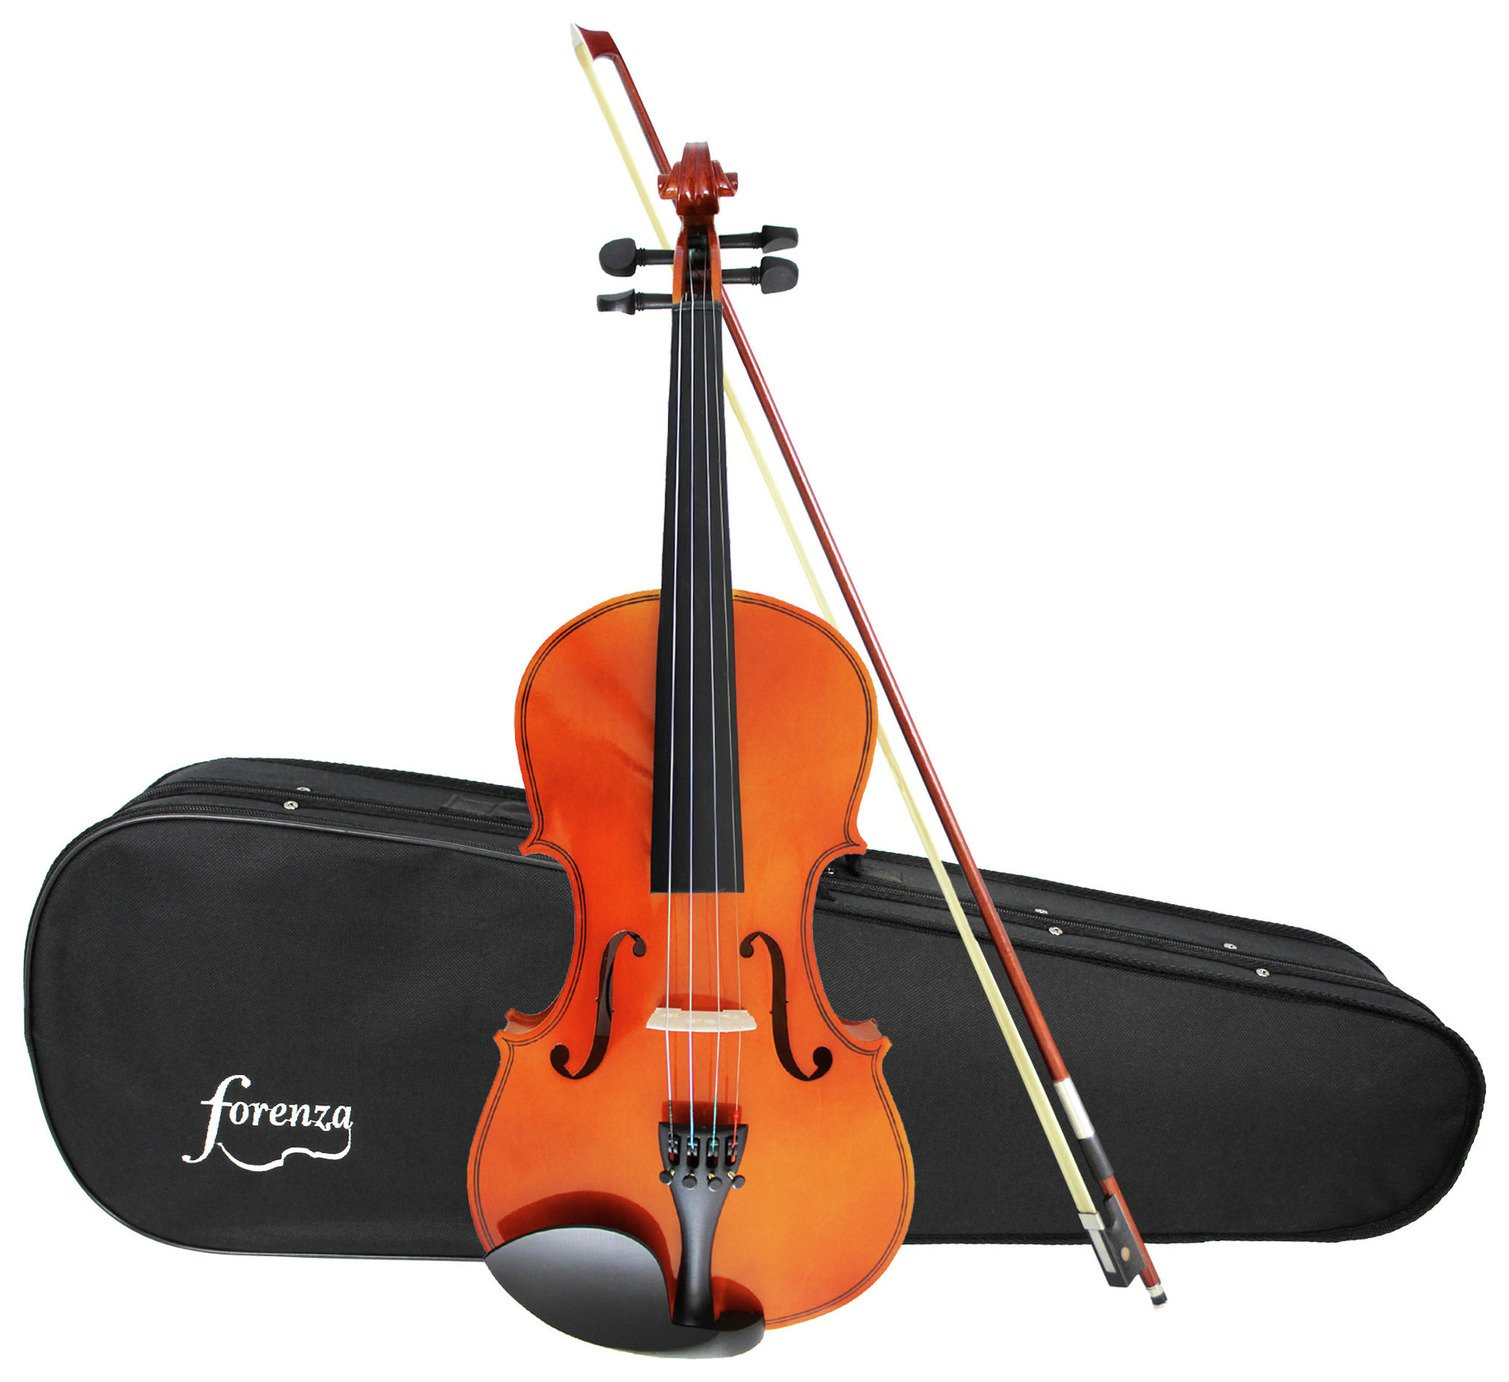 Image of Forenza Uno Series 1/2 Violin Outfit.